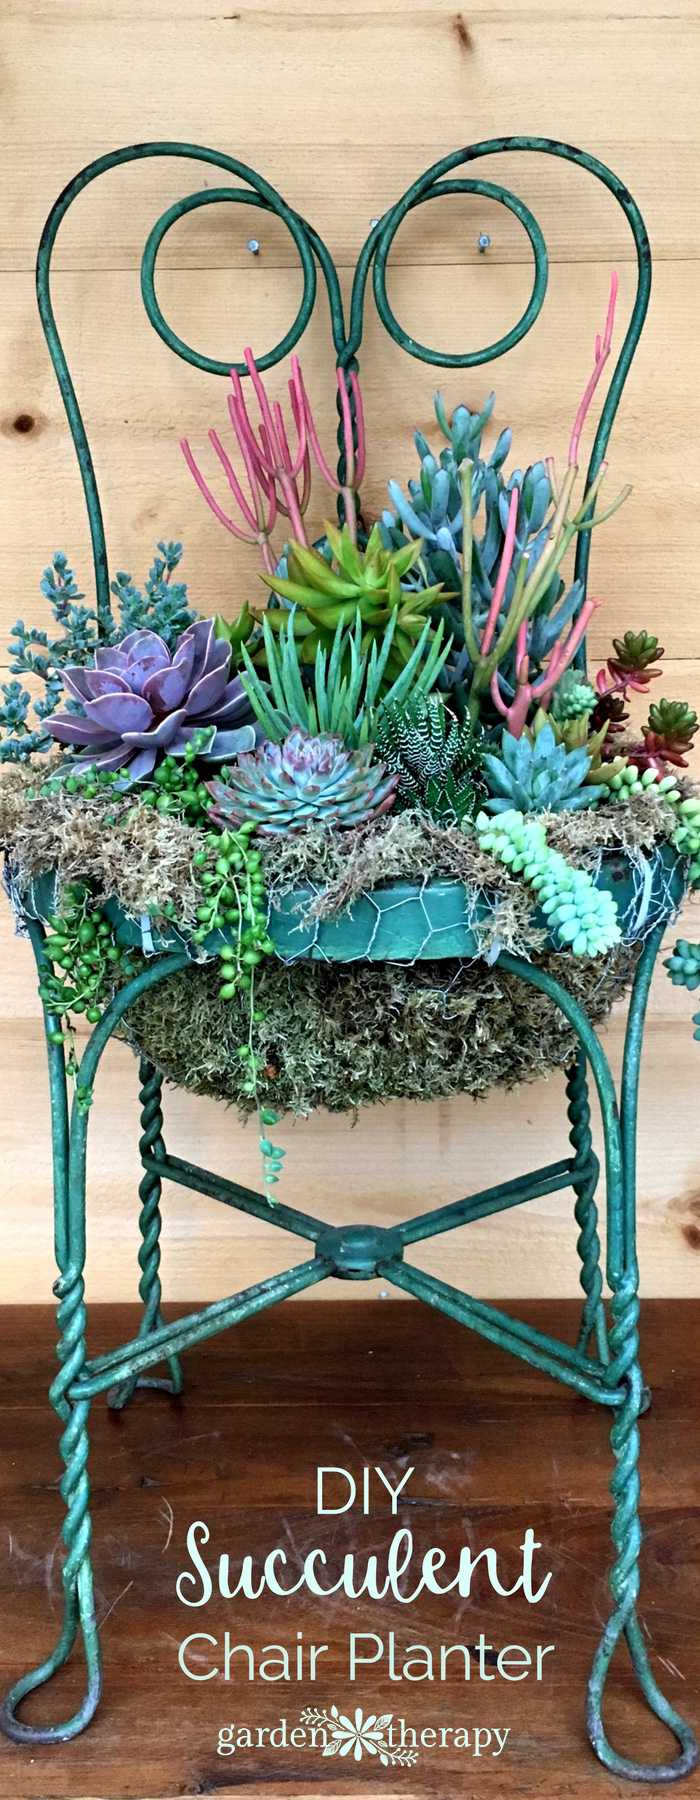 What an incredibly vivid use of an old metal chair! Find out how to DIY your own succulent chair for the front garden at Garden Therapy